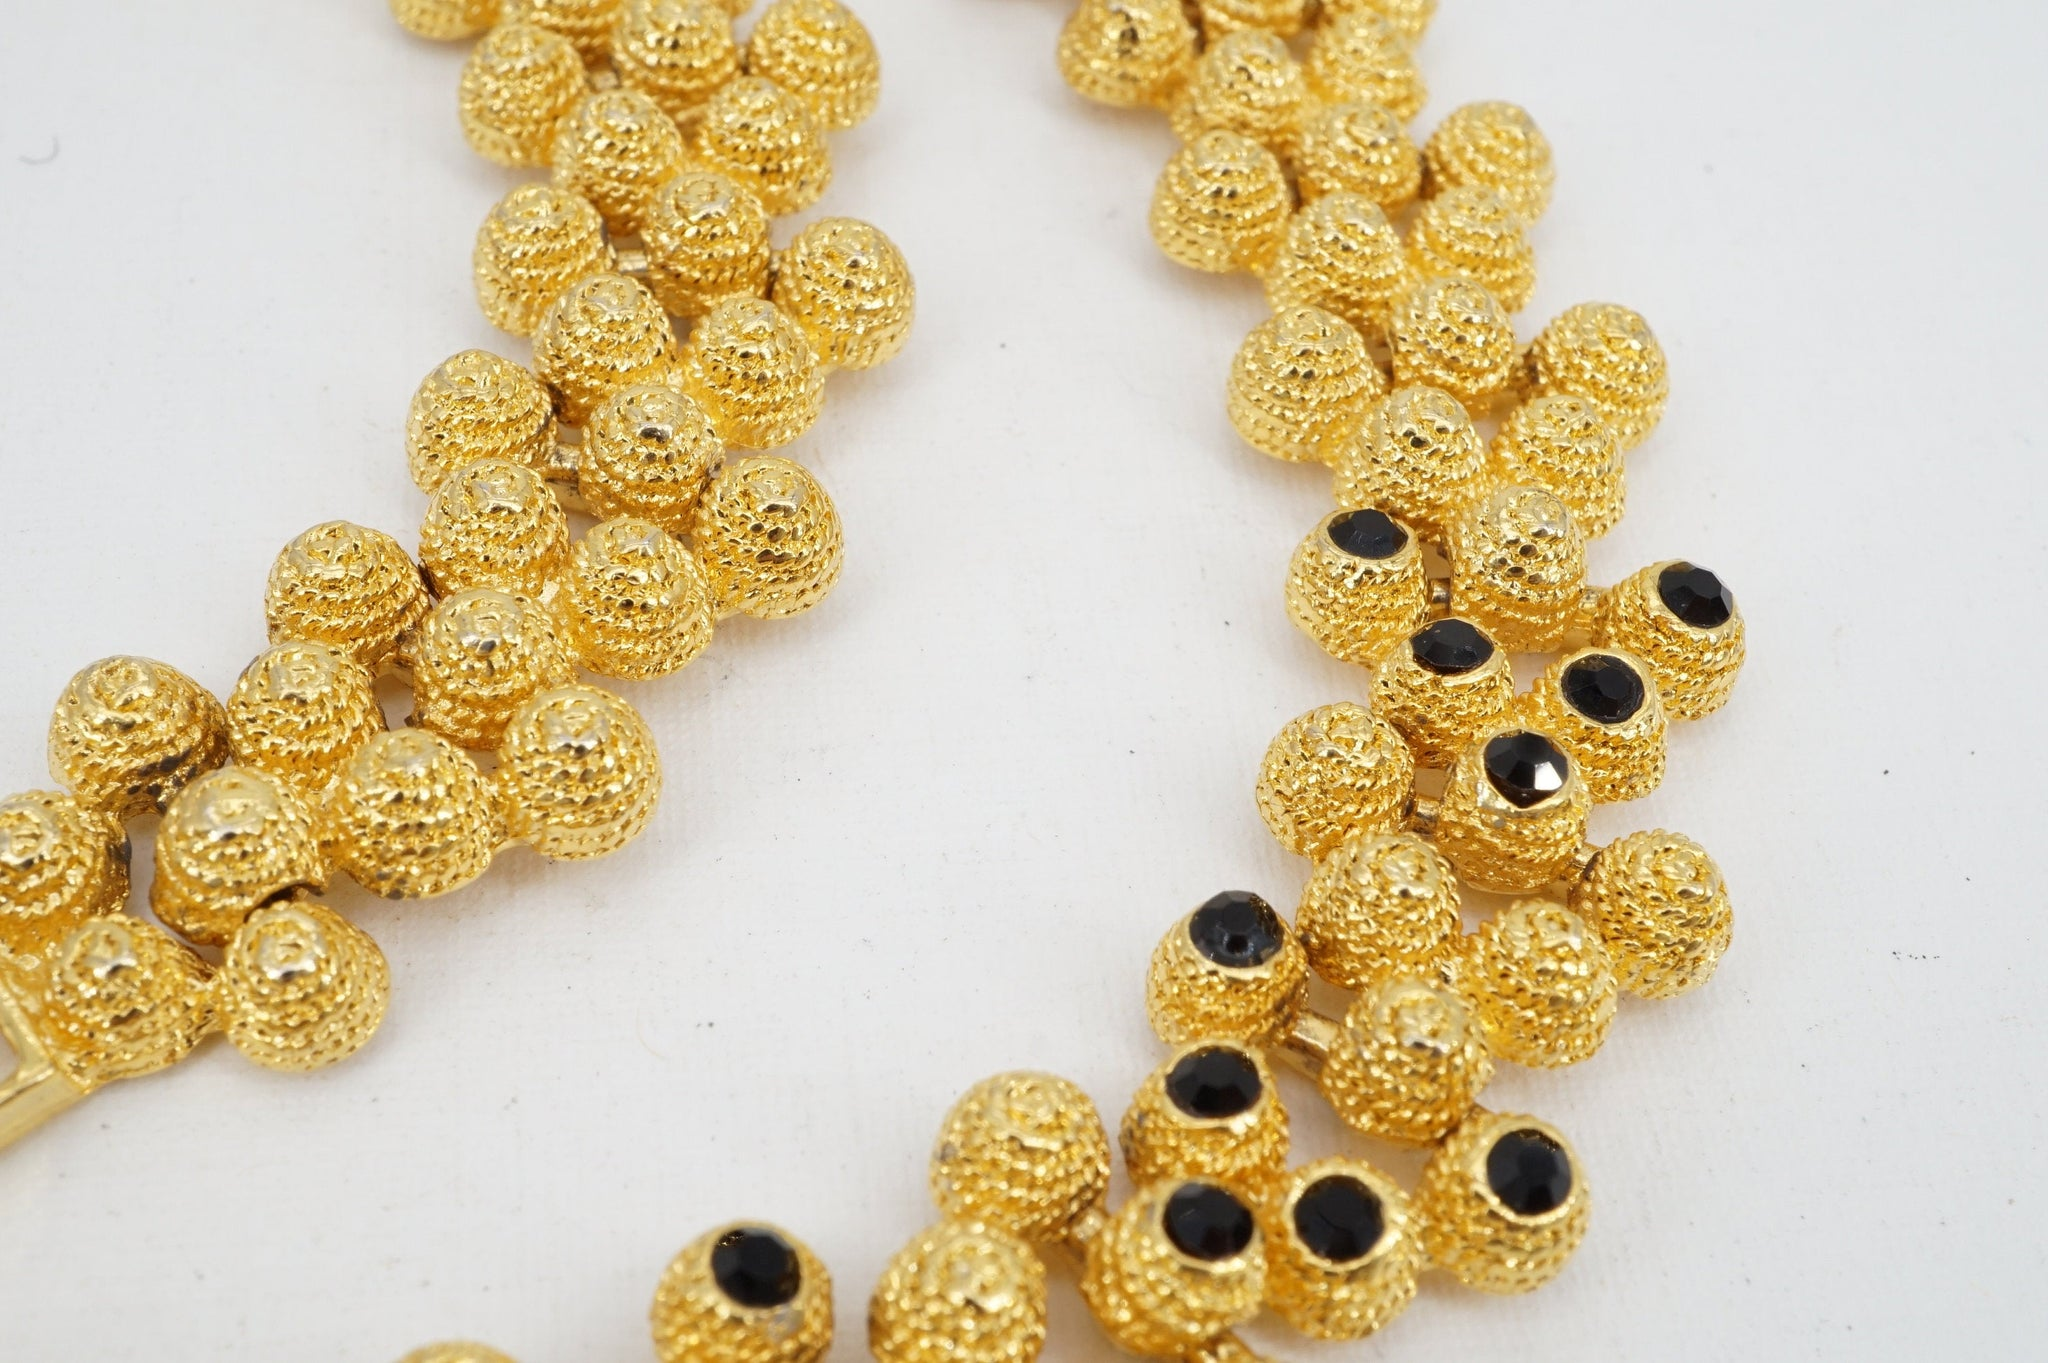 SALE ---- Vintage Gold Plated Textured Attached Bead Necklace